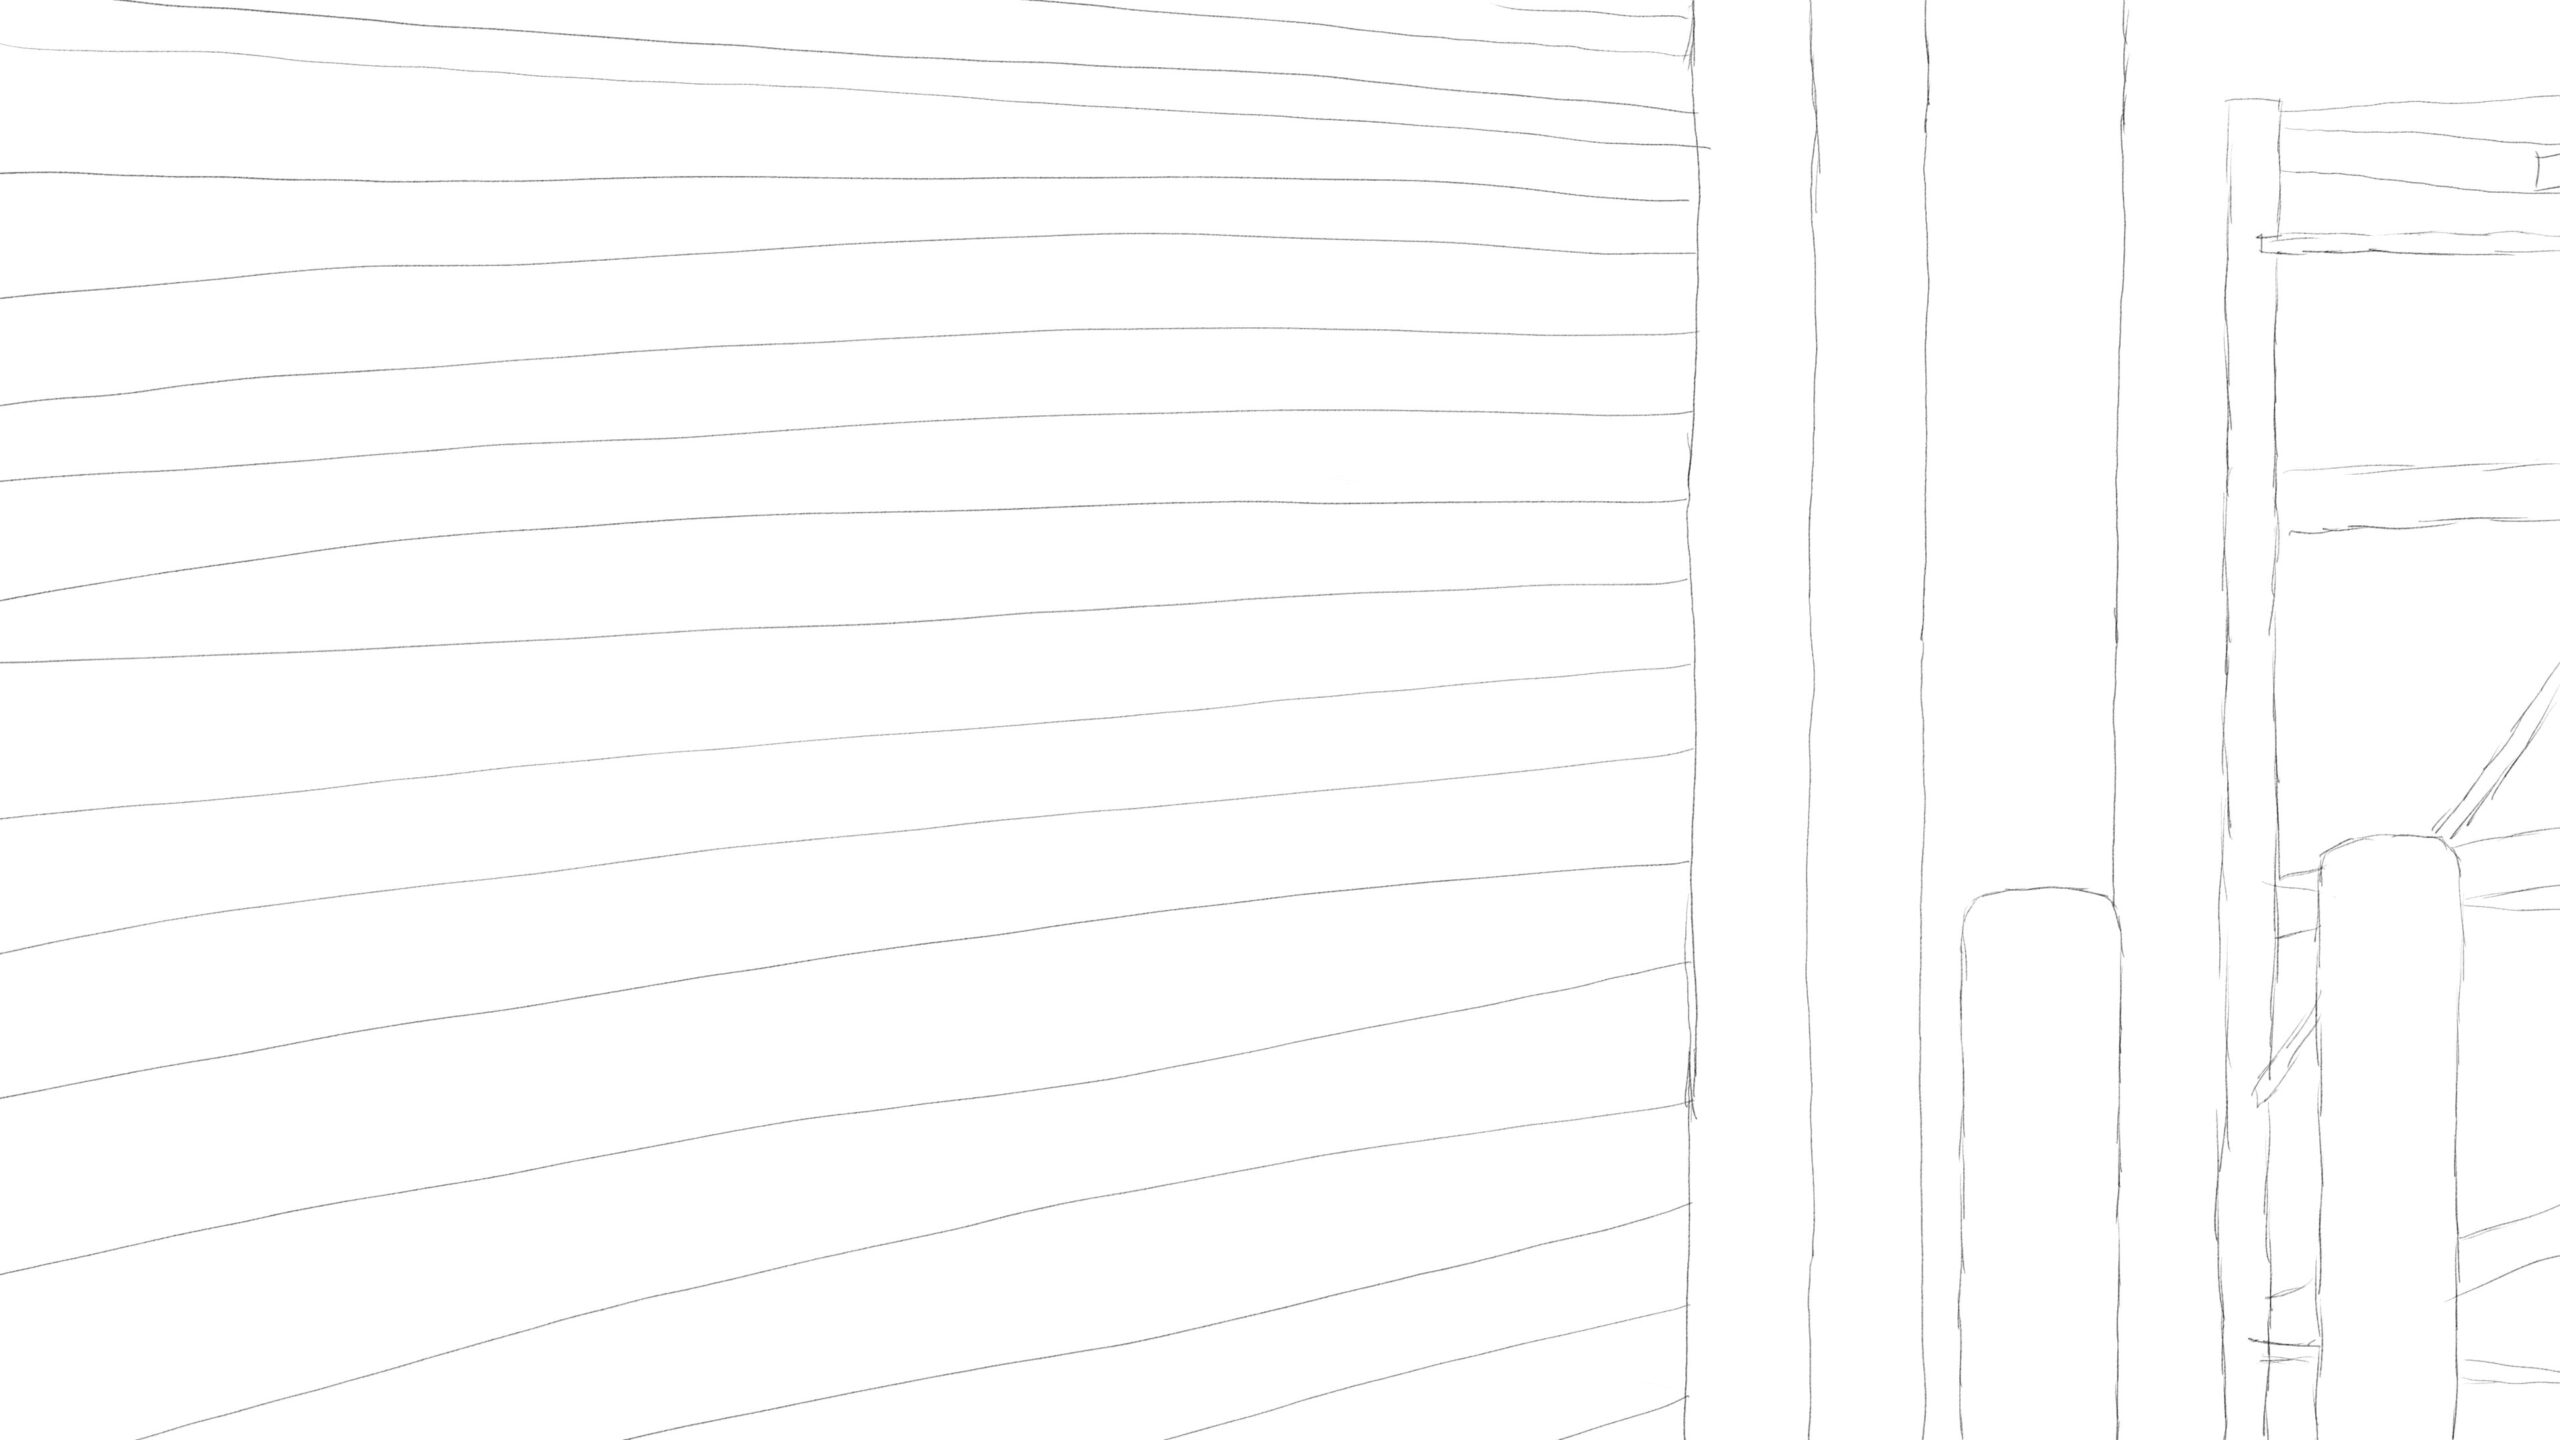 Pitney Bowes-RumbleOn concept art - close-up drawing of a garage door